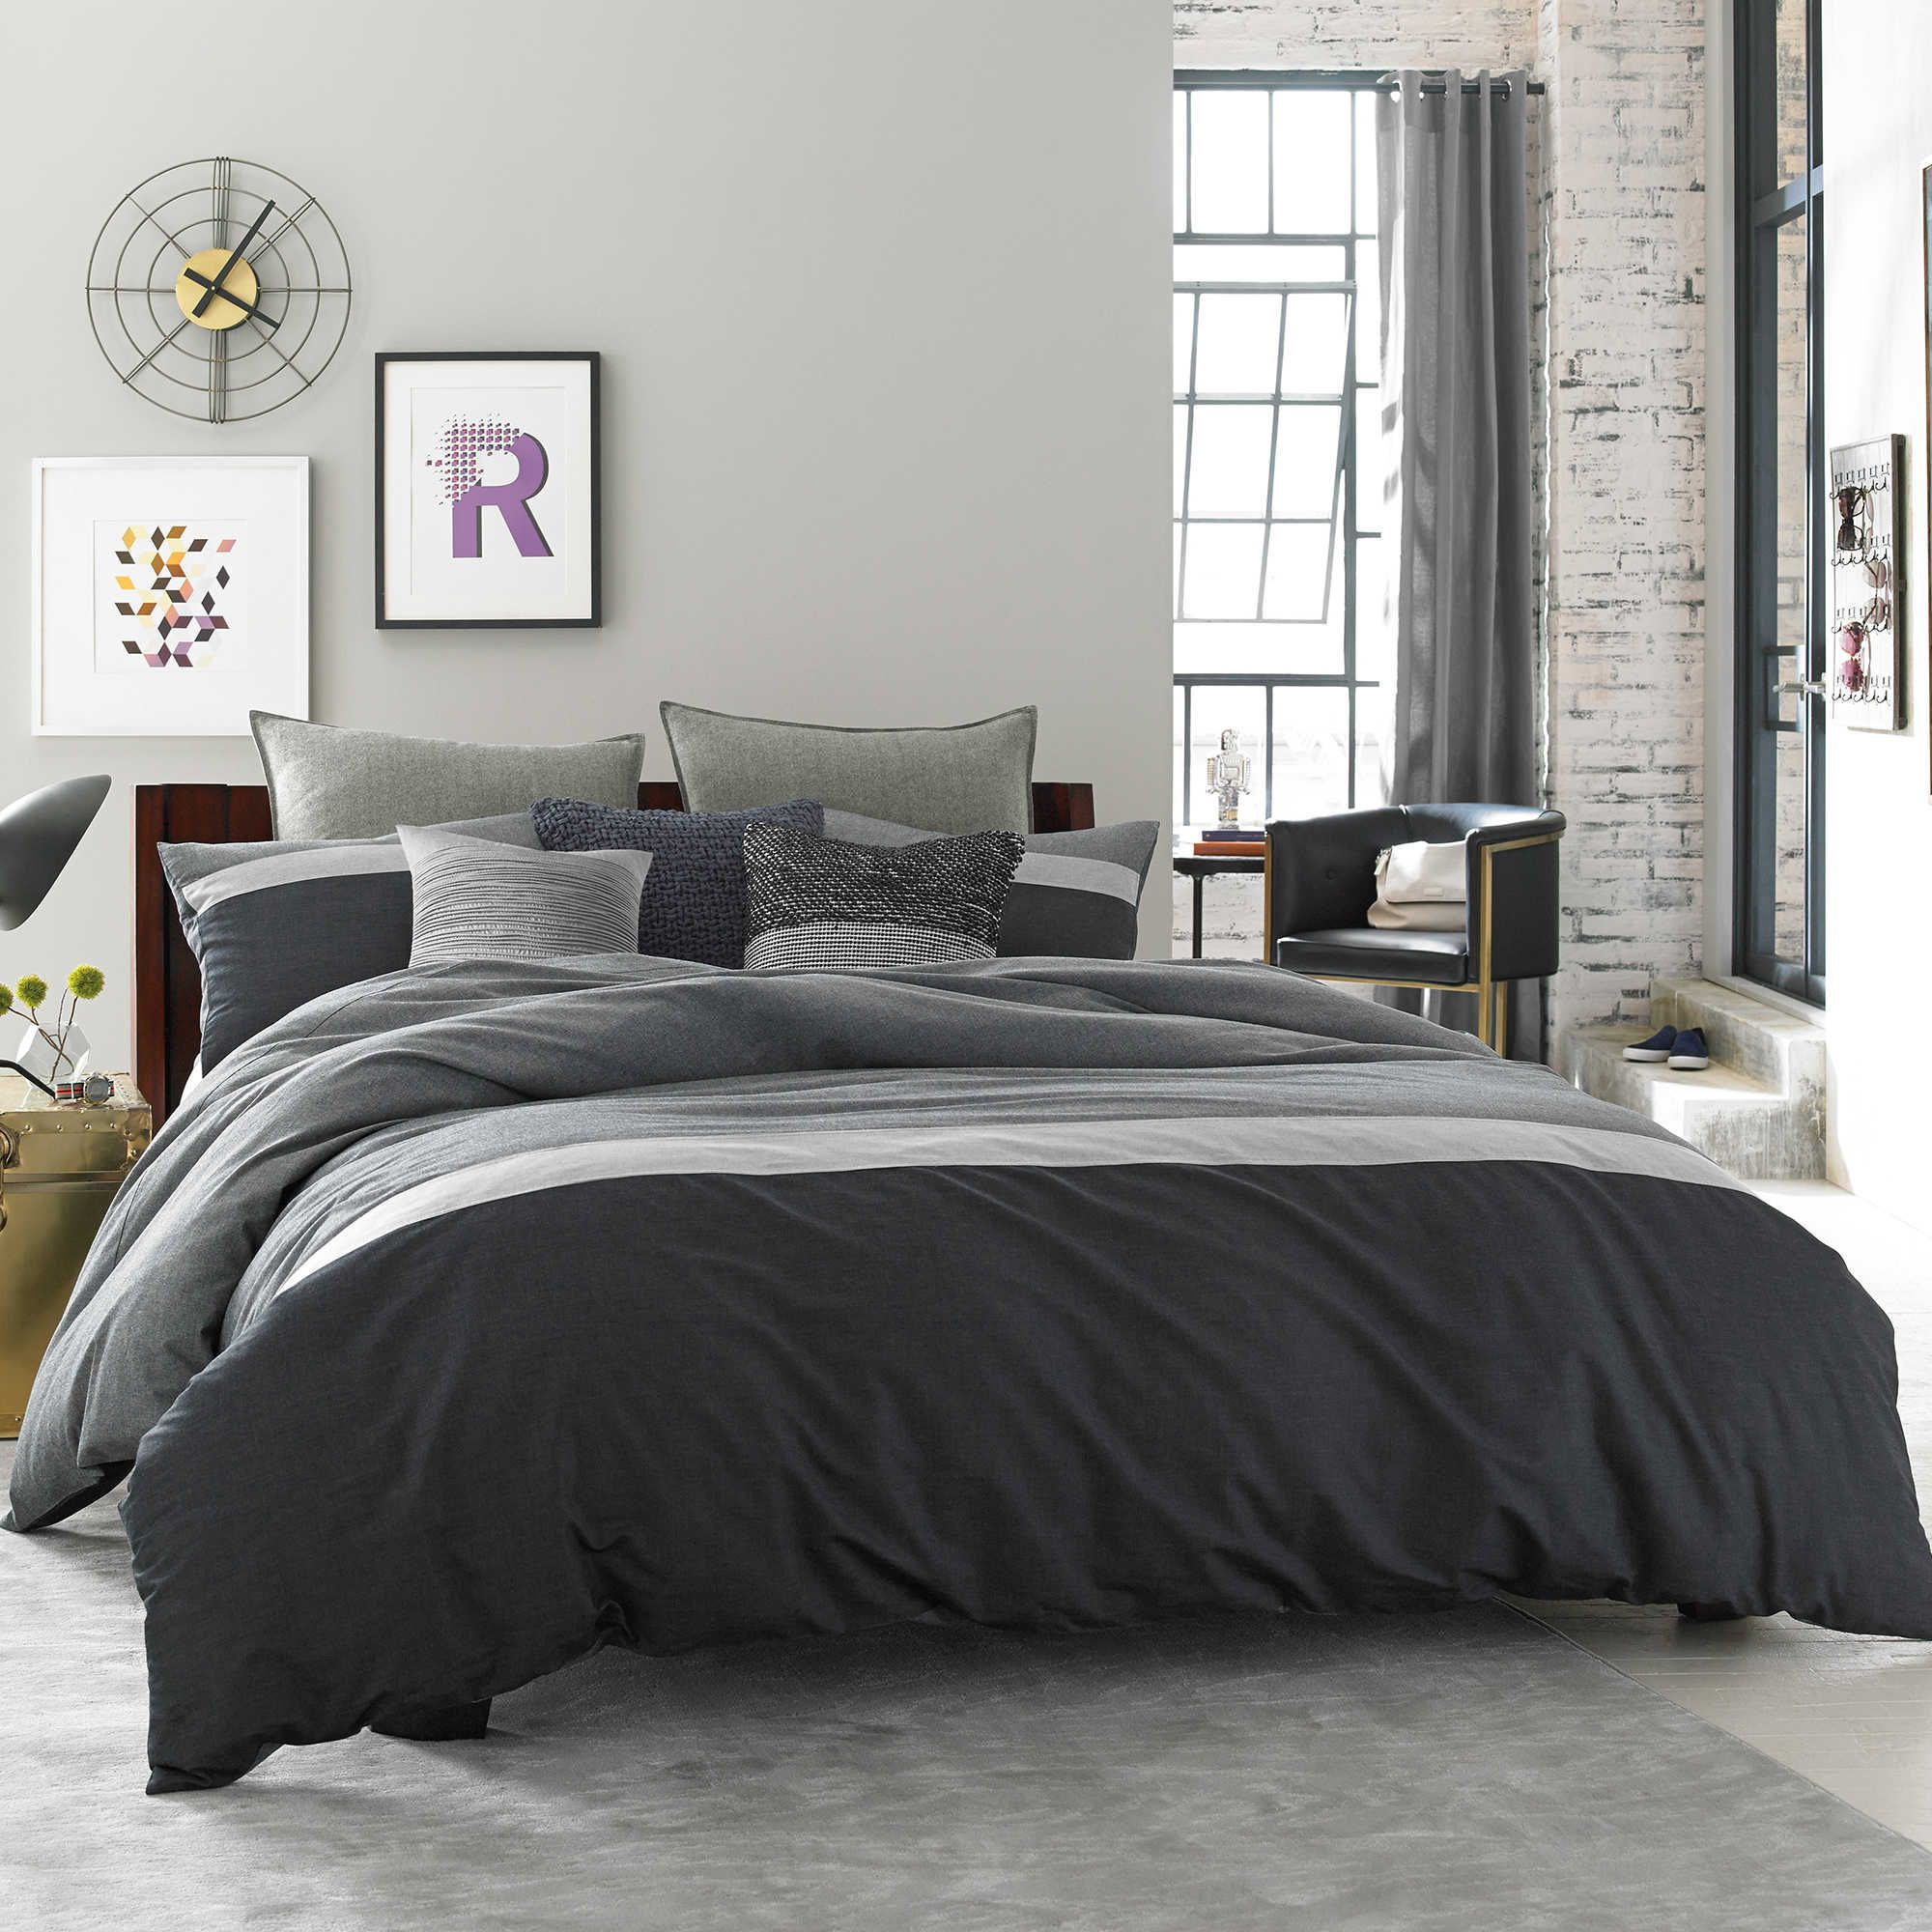 Kenneth Cole Reaction Home Fusion Duvet Cover In Indigo Kenneth